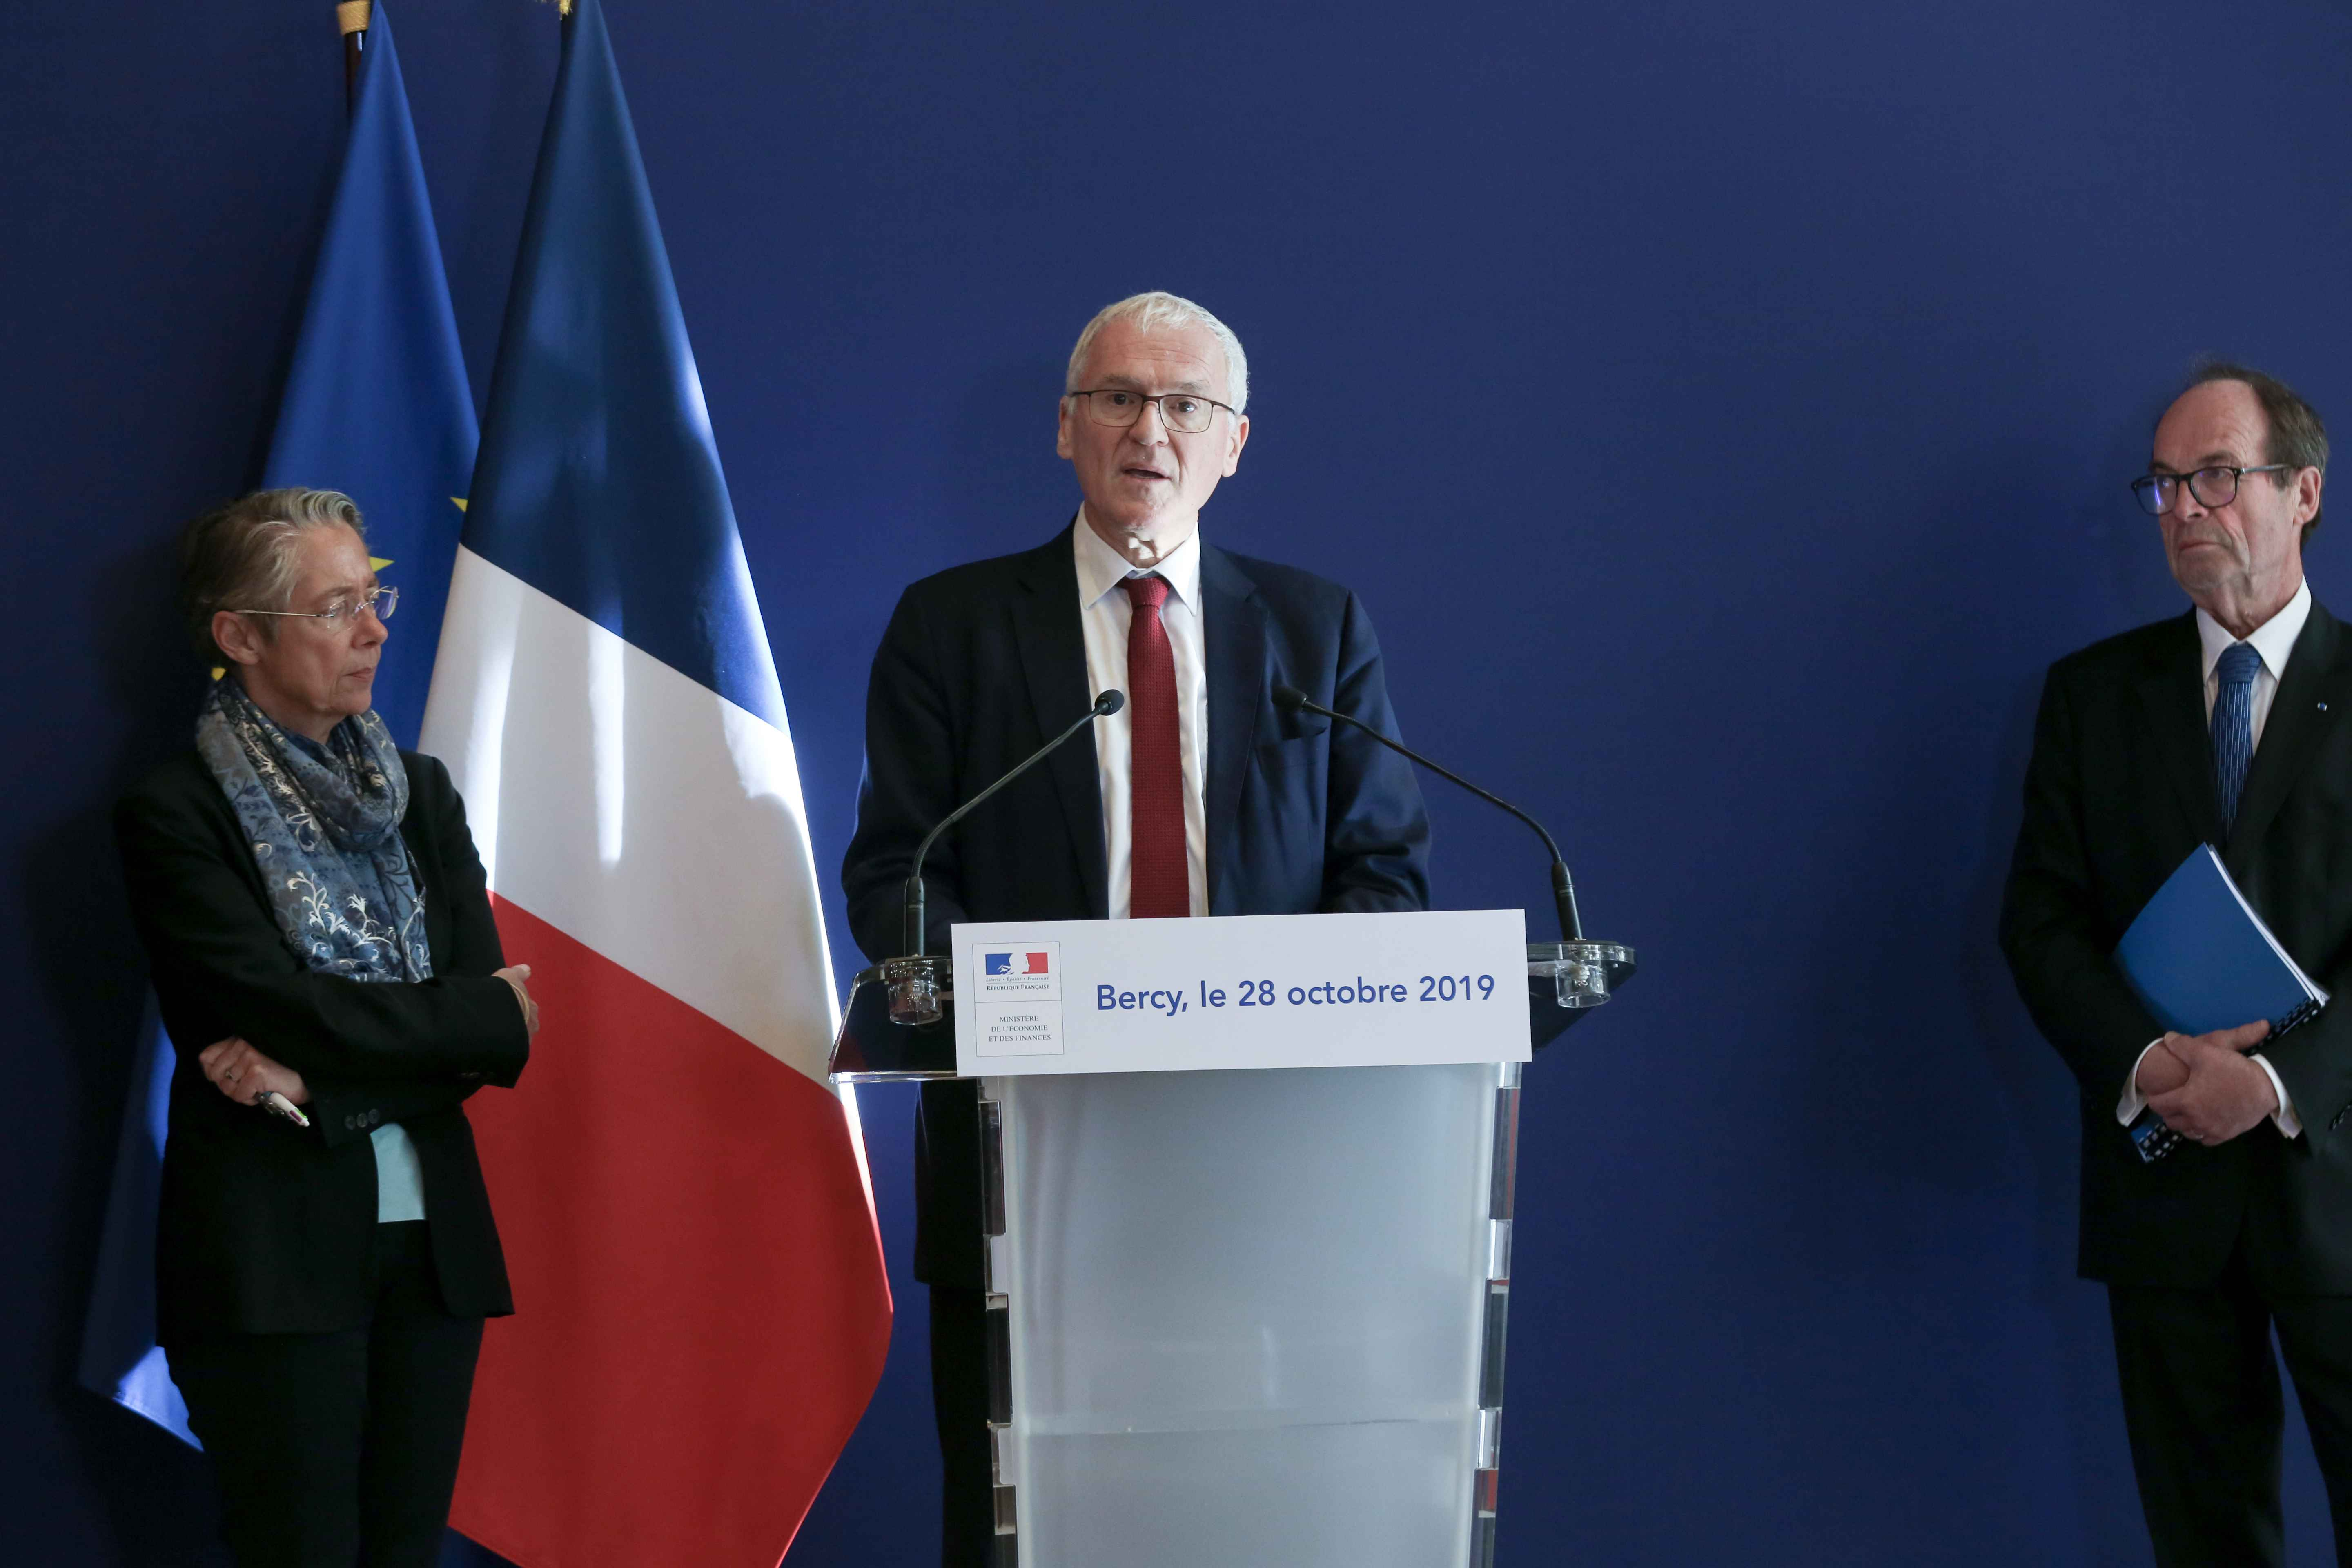 (From L to R) French Minister for the Ecological and Inclusive Transition Elisabeth Borne, French energy giant EDF's CEO Jean-Bernard Levy and report head Jean-Martin Folz give a press conference to present a report concerning the construction of the EPR a